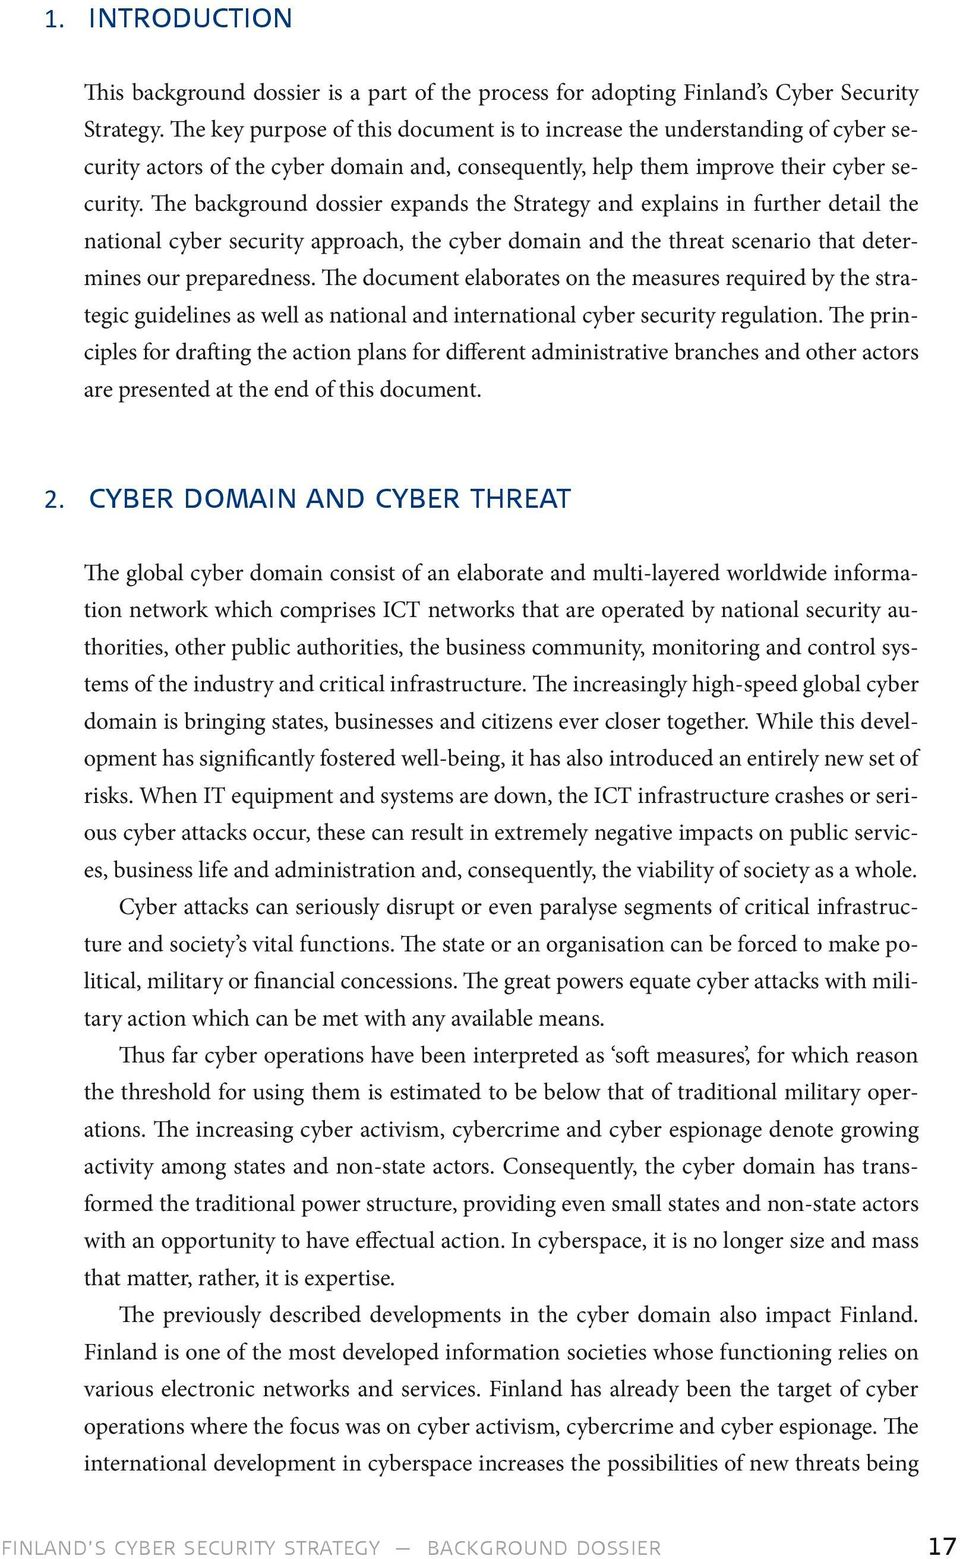 The background dossier expands the Strategy and explains in further detail the national cyber security approach, the cyber domain and the threat scenario that determines our preparedness.